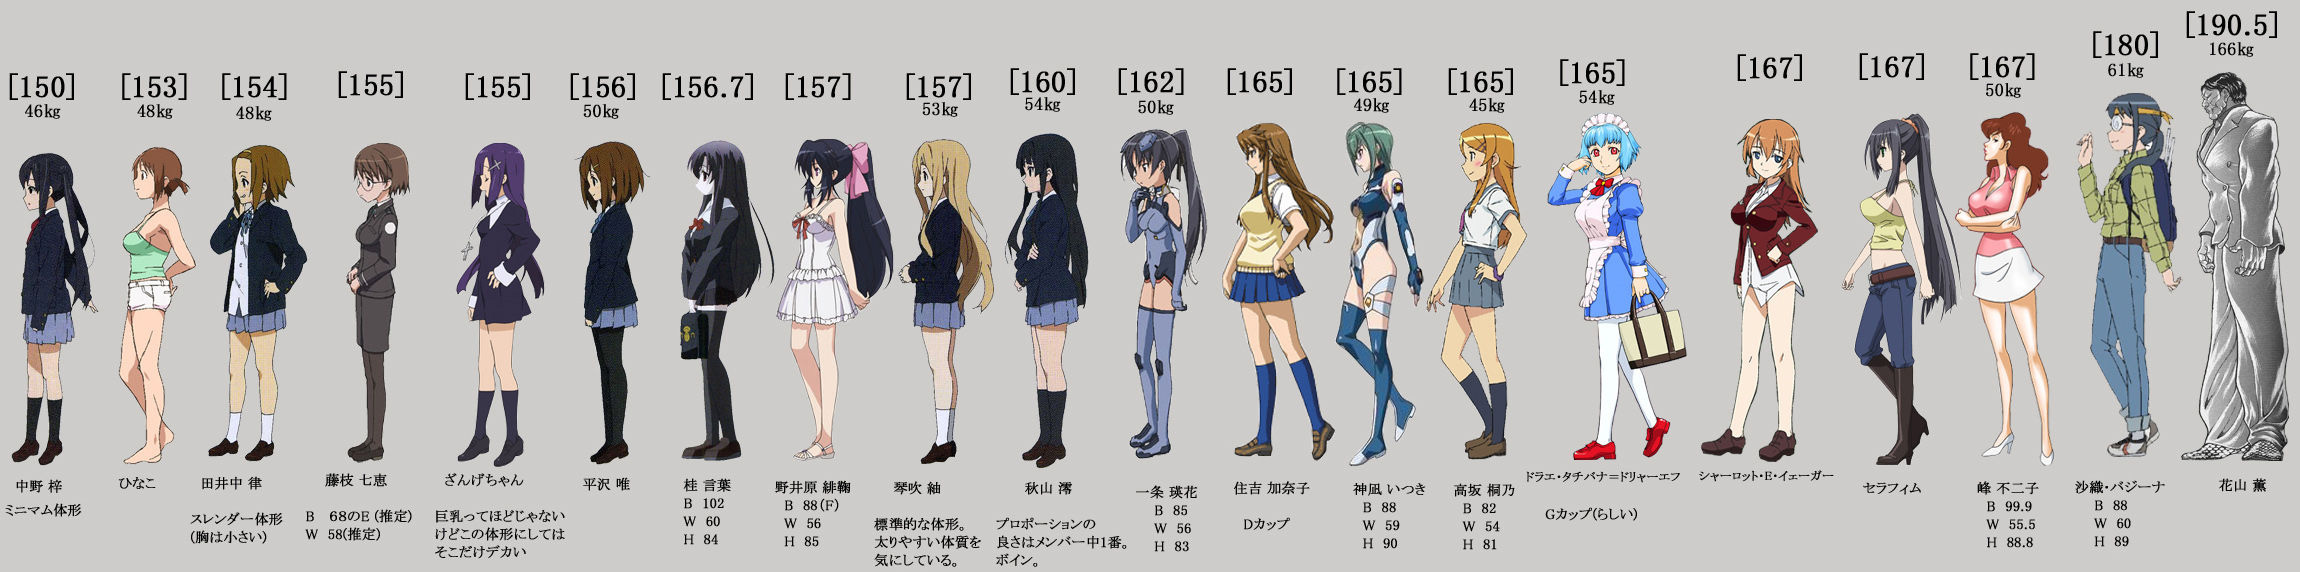 Female-Anime-Characters-Height-Weight-Comparison-Chart